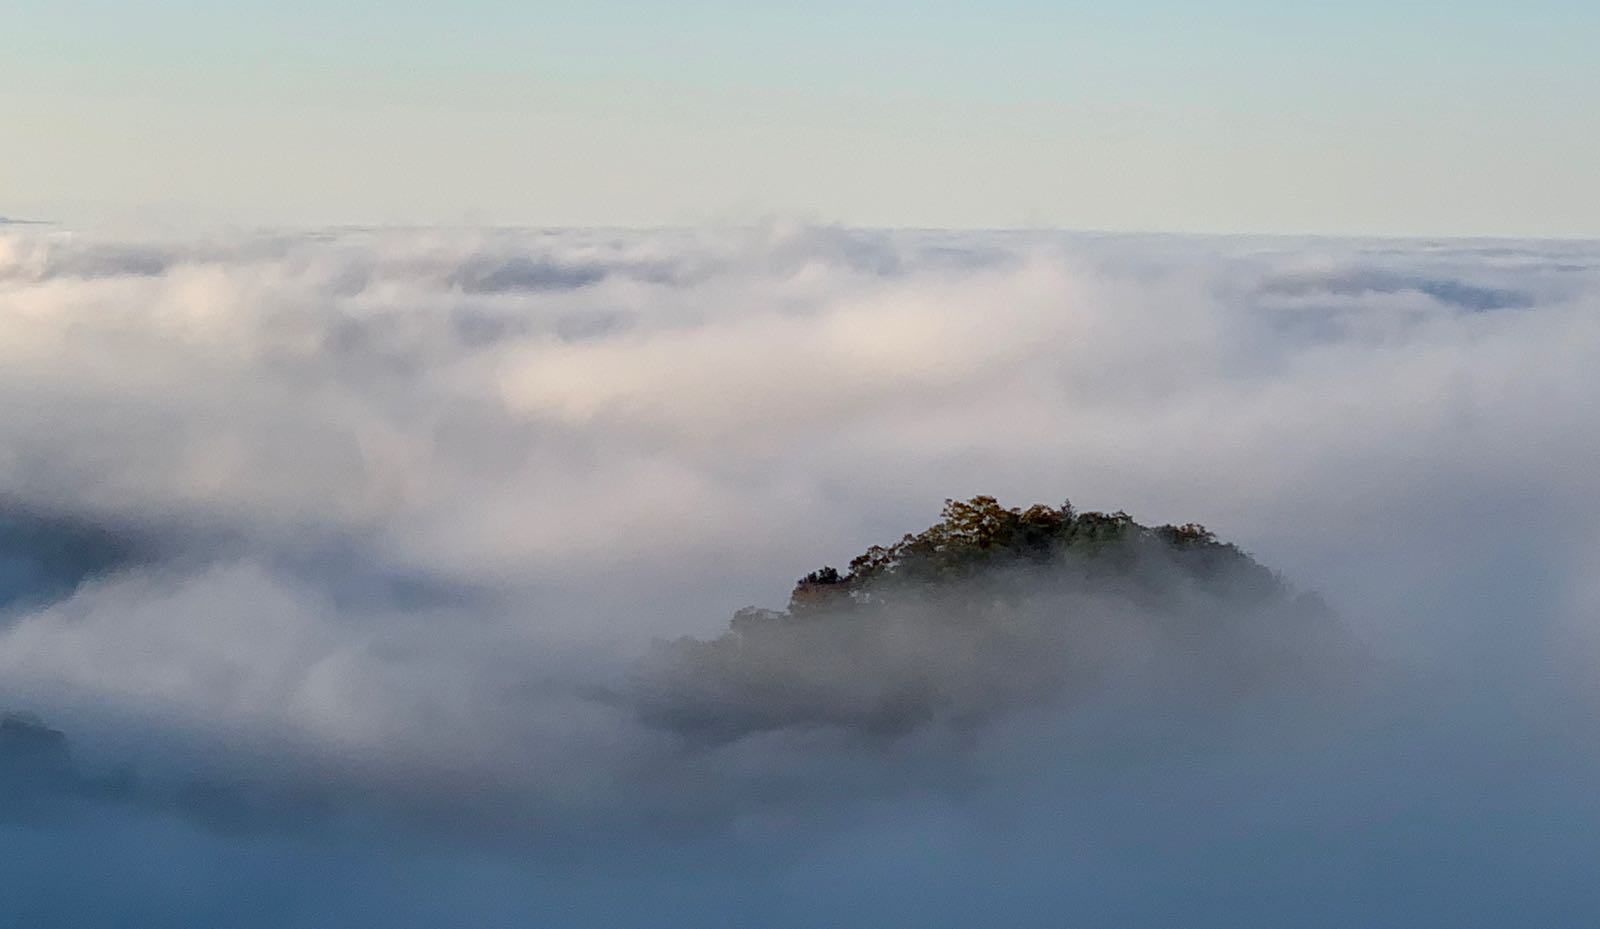 An island disappeared into a sea of clouds, then reemerged minutes later.